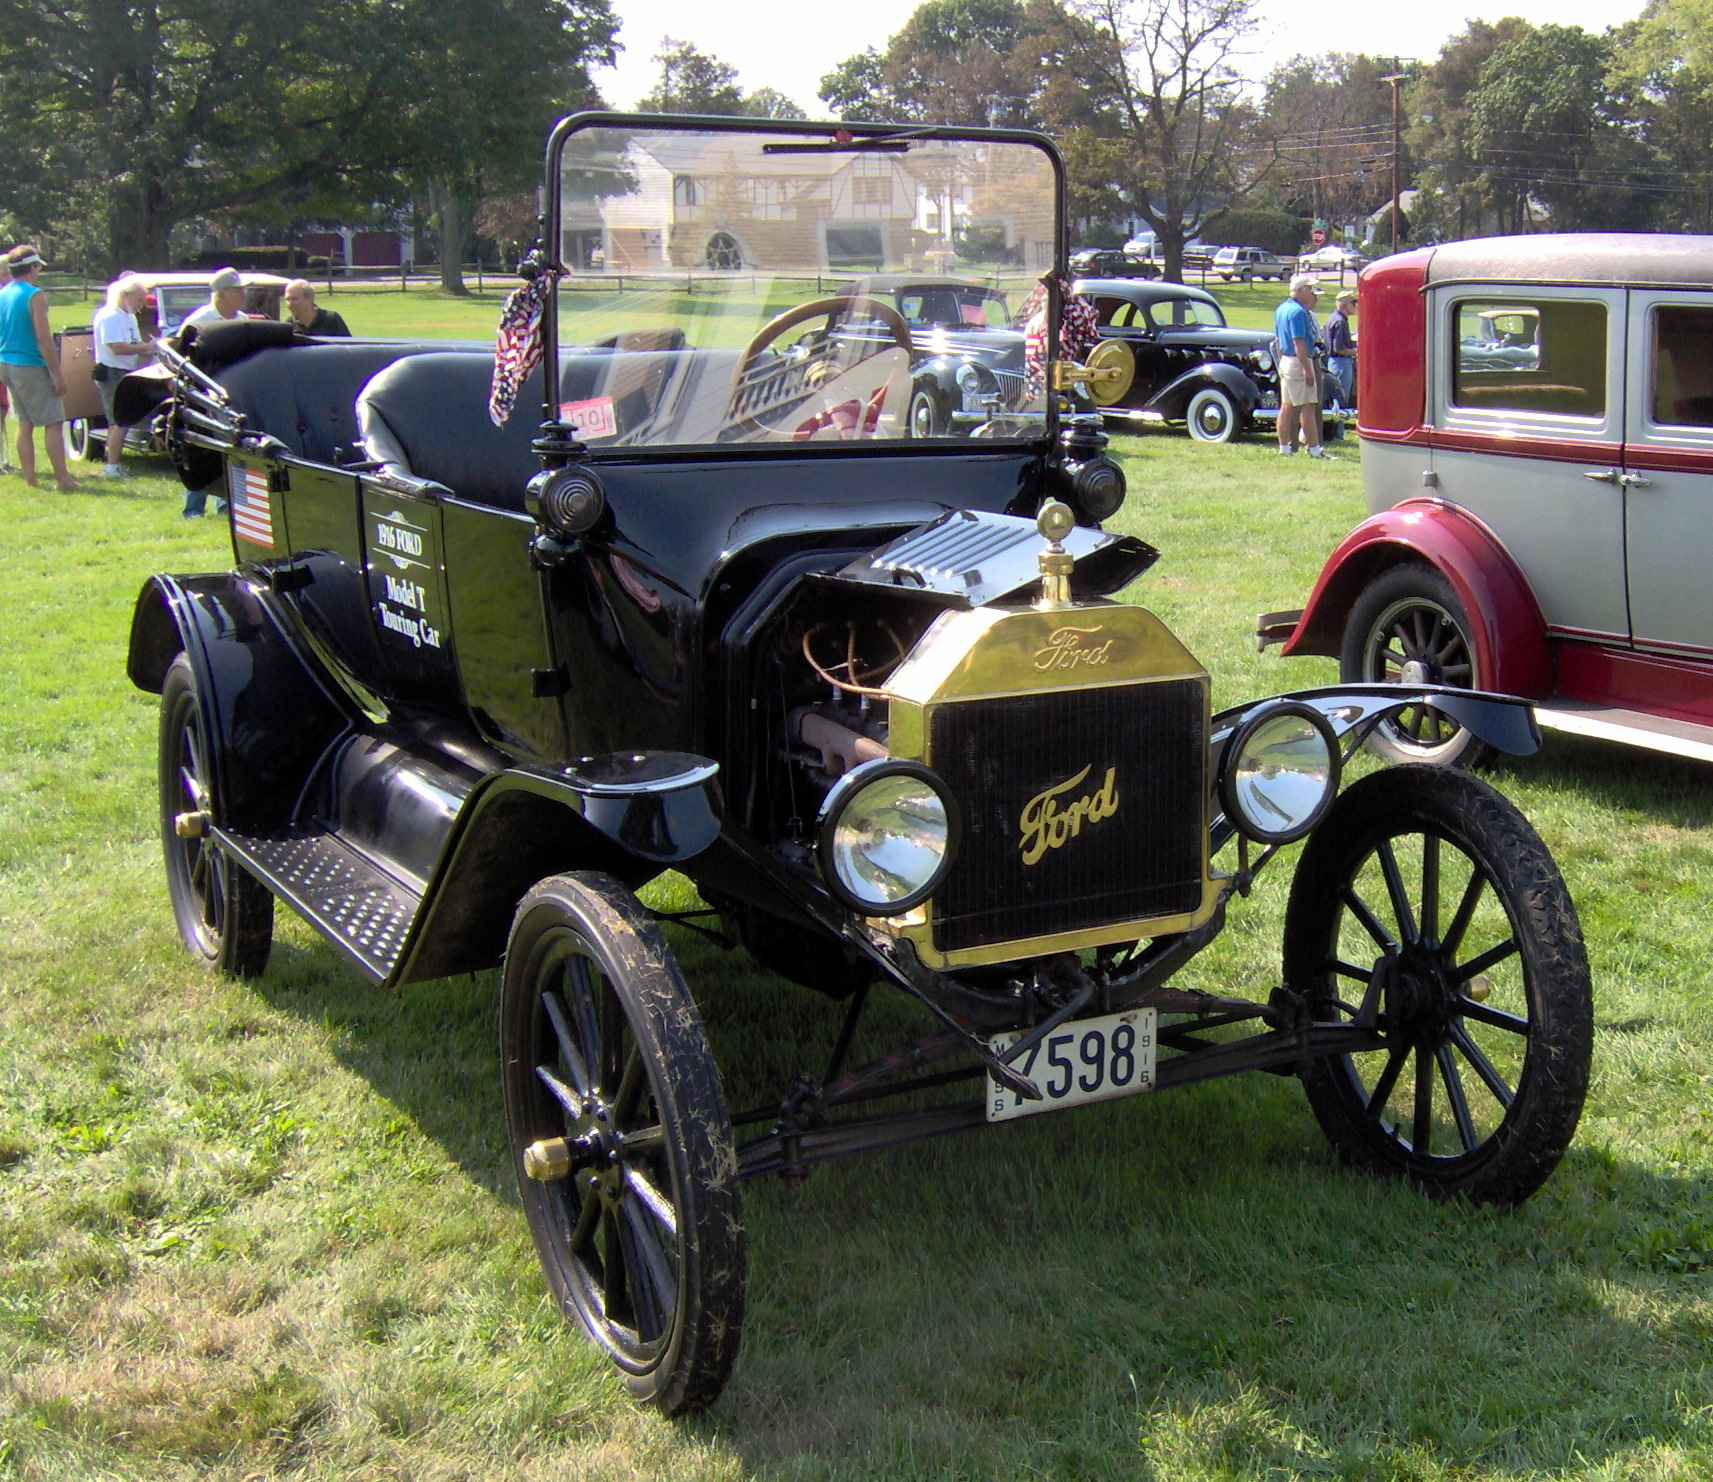 Datoteka 1916 Ford Model T Touring Car Jpg Wikipedija